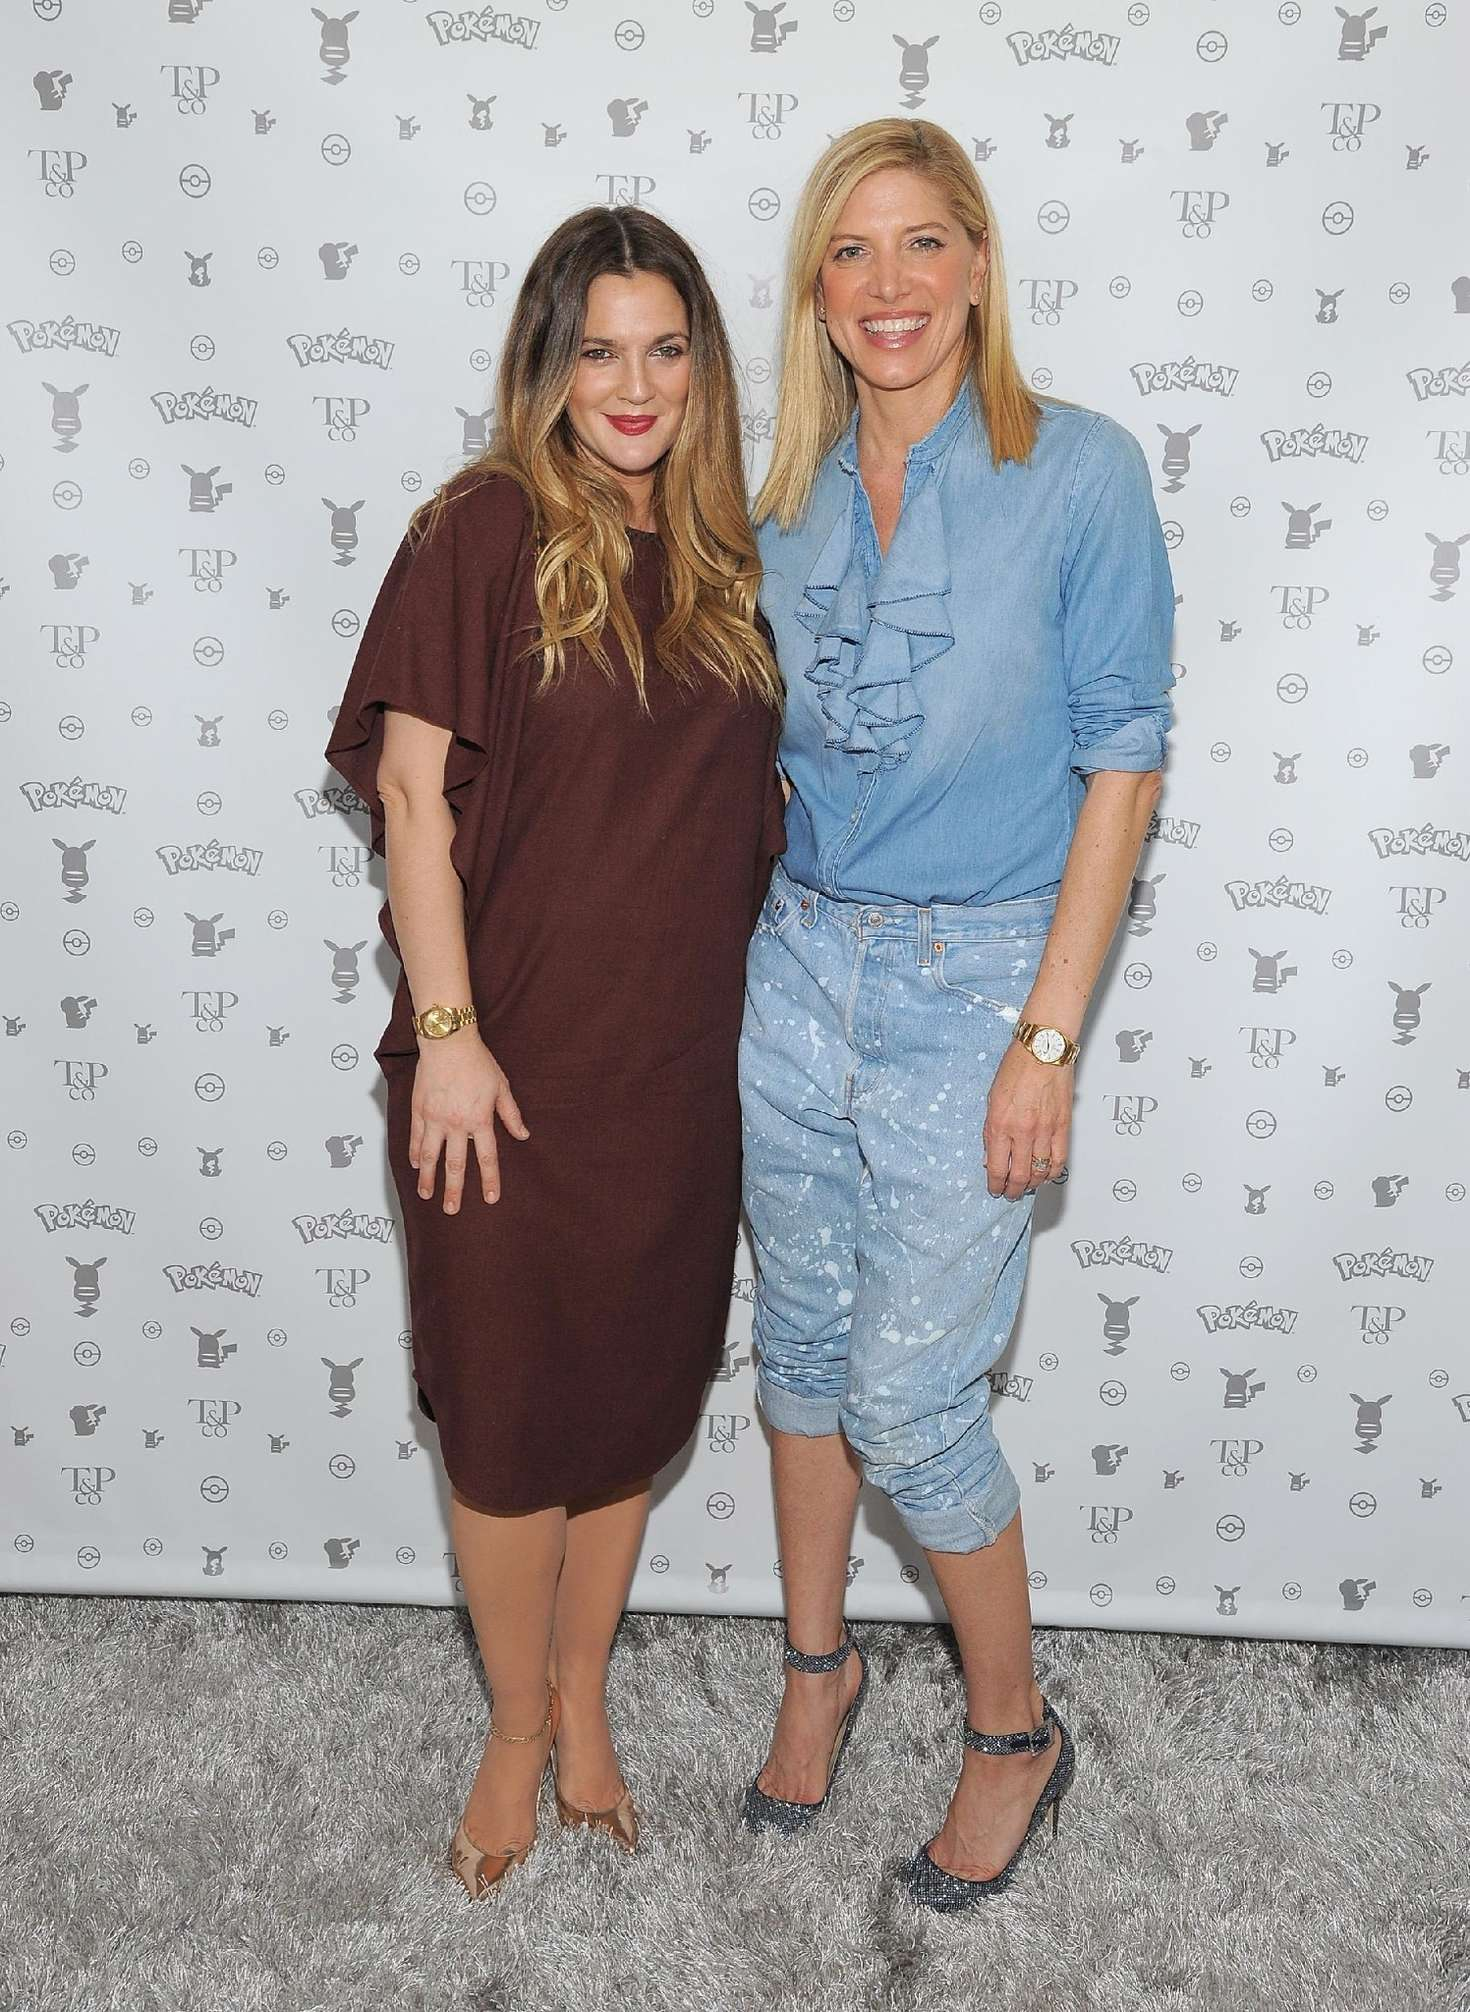 Drew Barrymore 2016 : Drew Barrymore: Tracy Paul and Co Presents Pokemon Afternoon Soiree -17